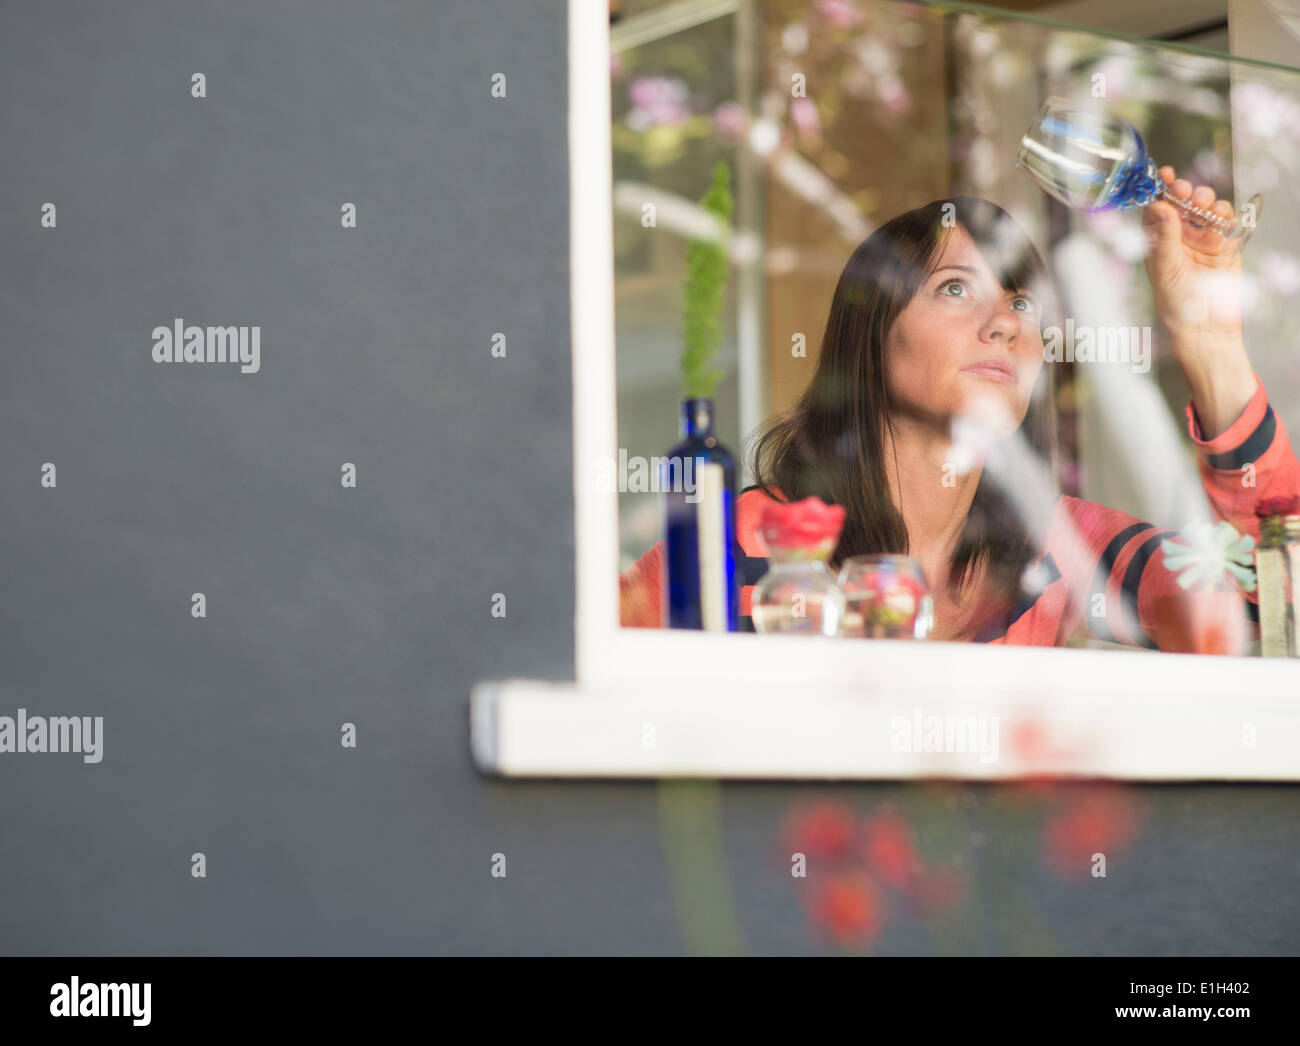 Mature woman at house window examining wine glass - Stock Image